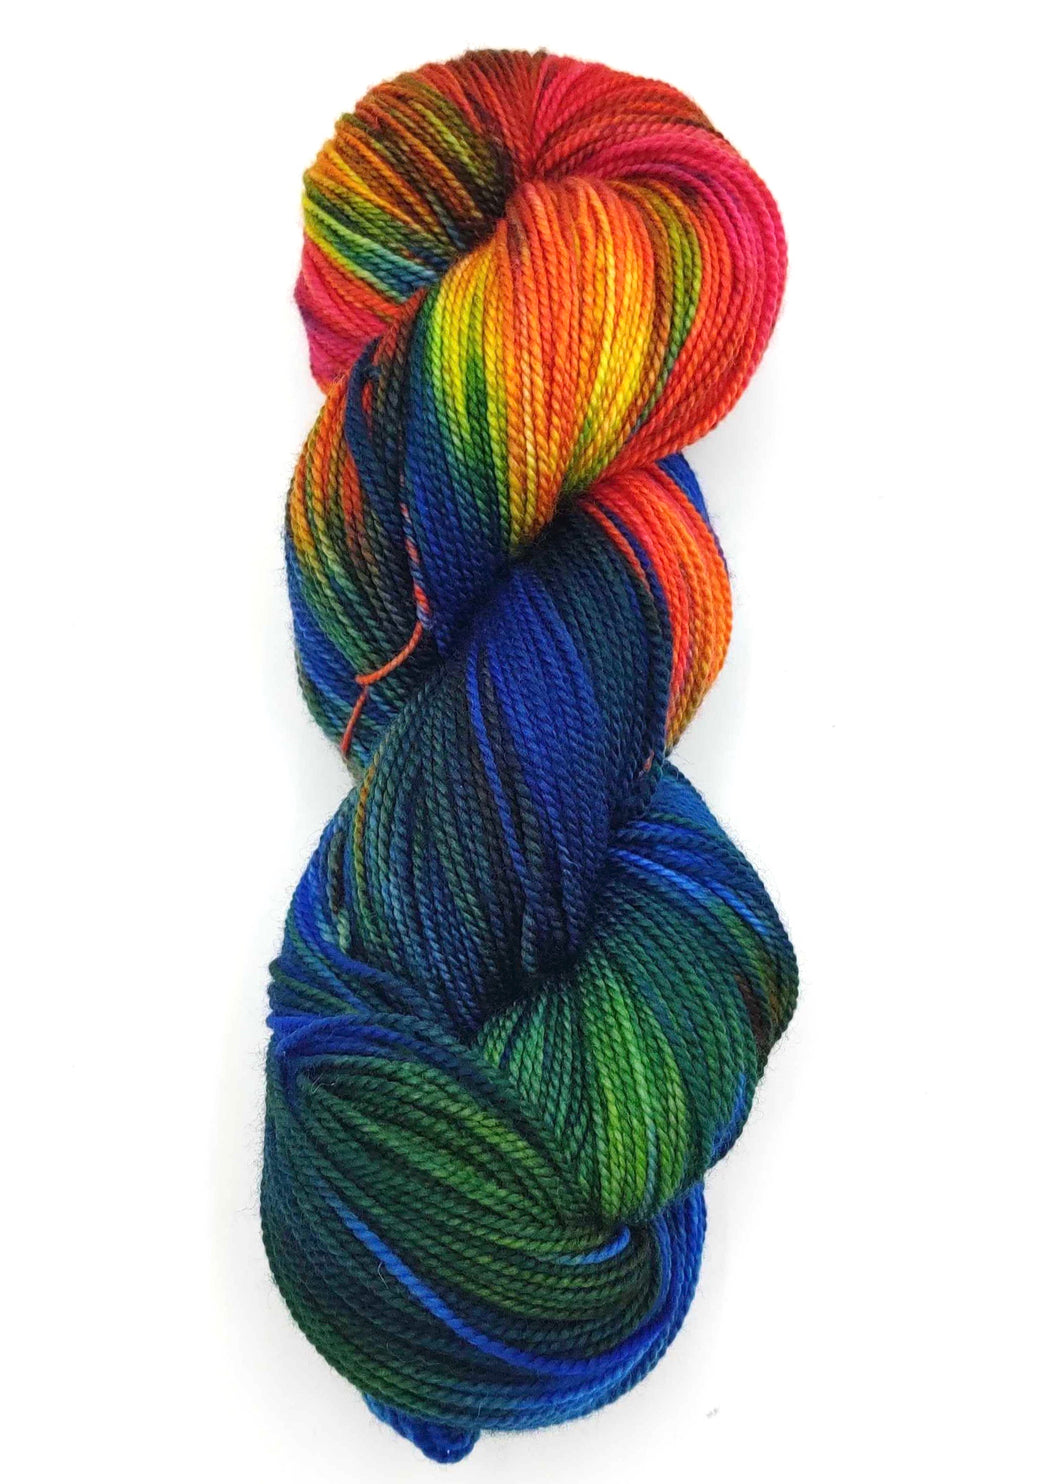 Baah Yarn - Exclusive Monthly Yarn Color - March '20